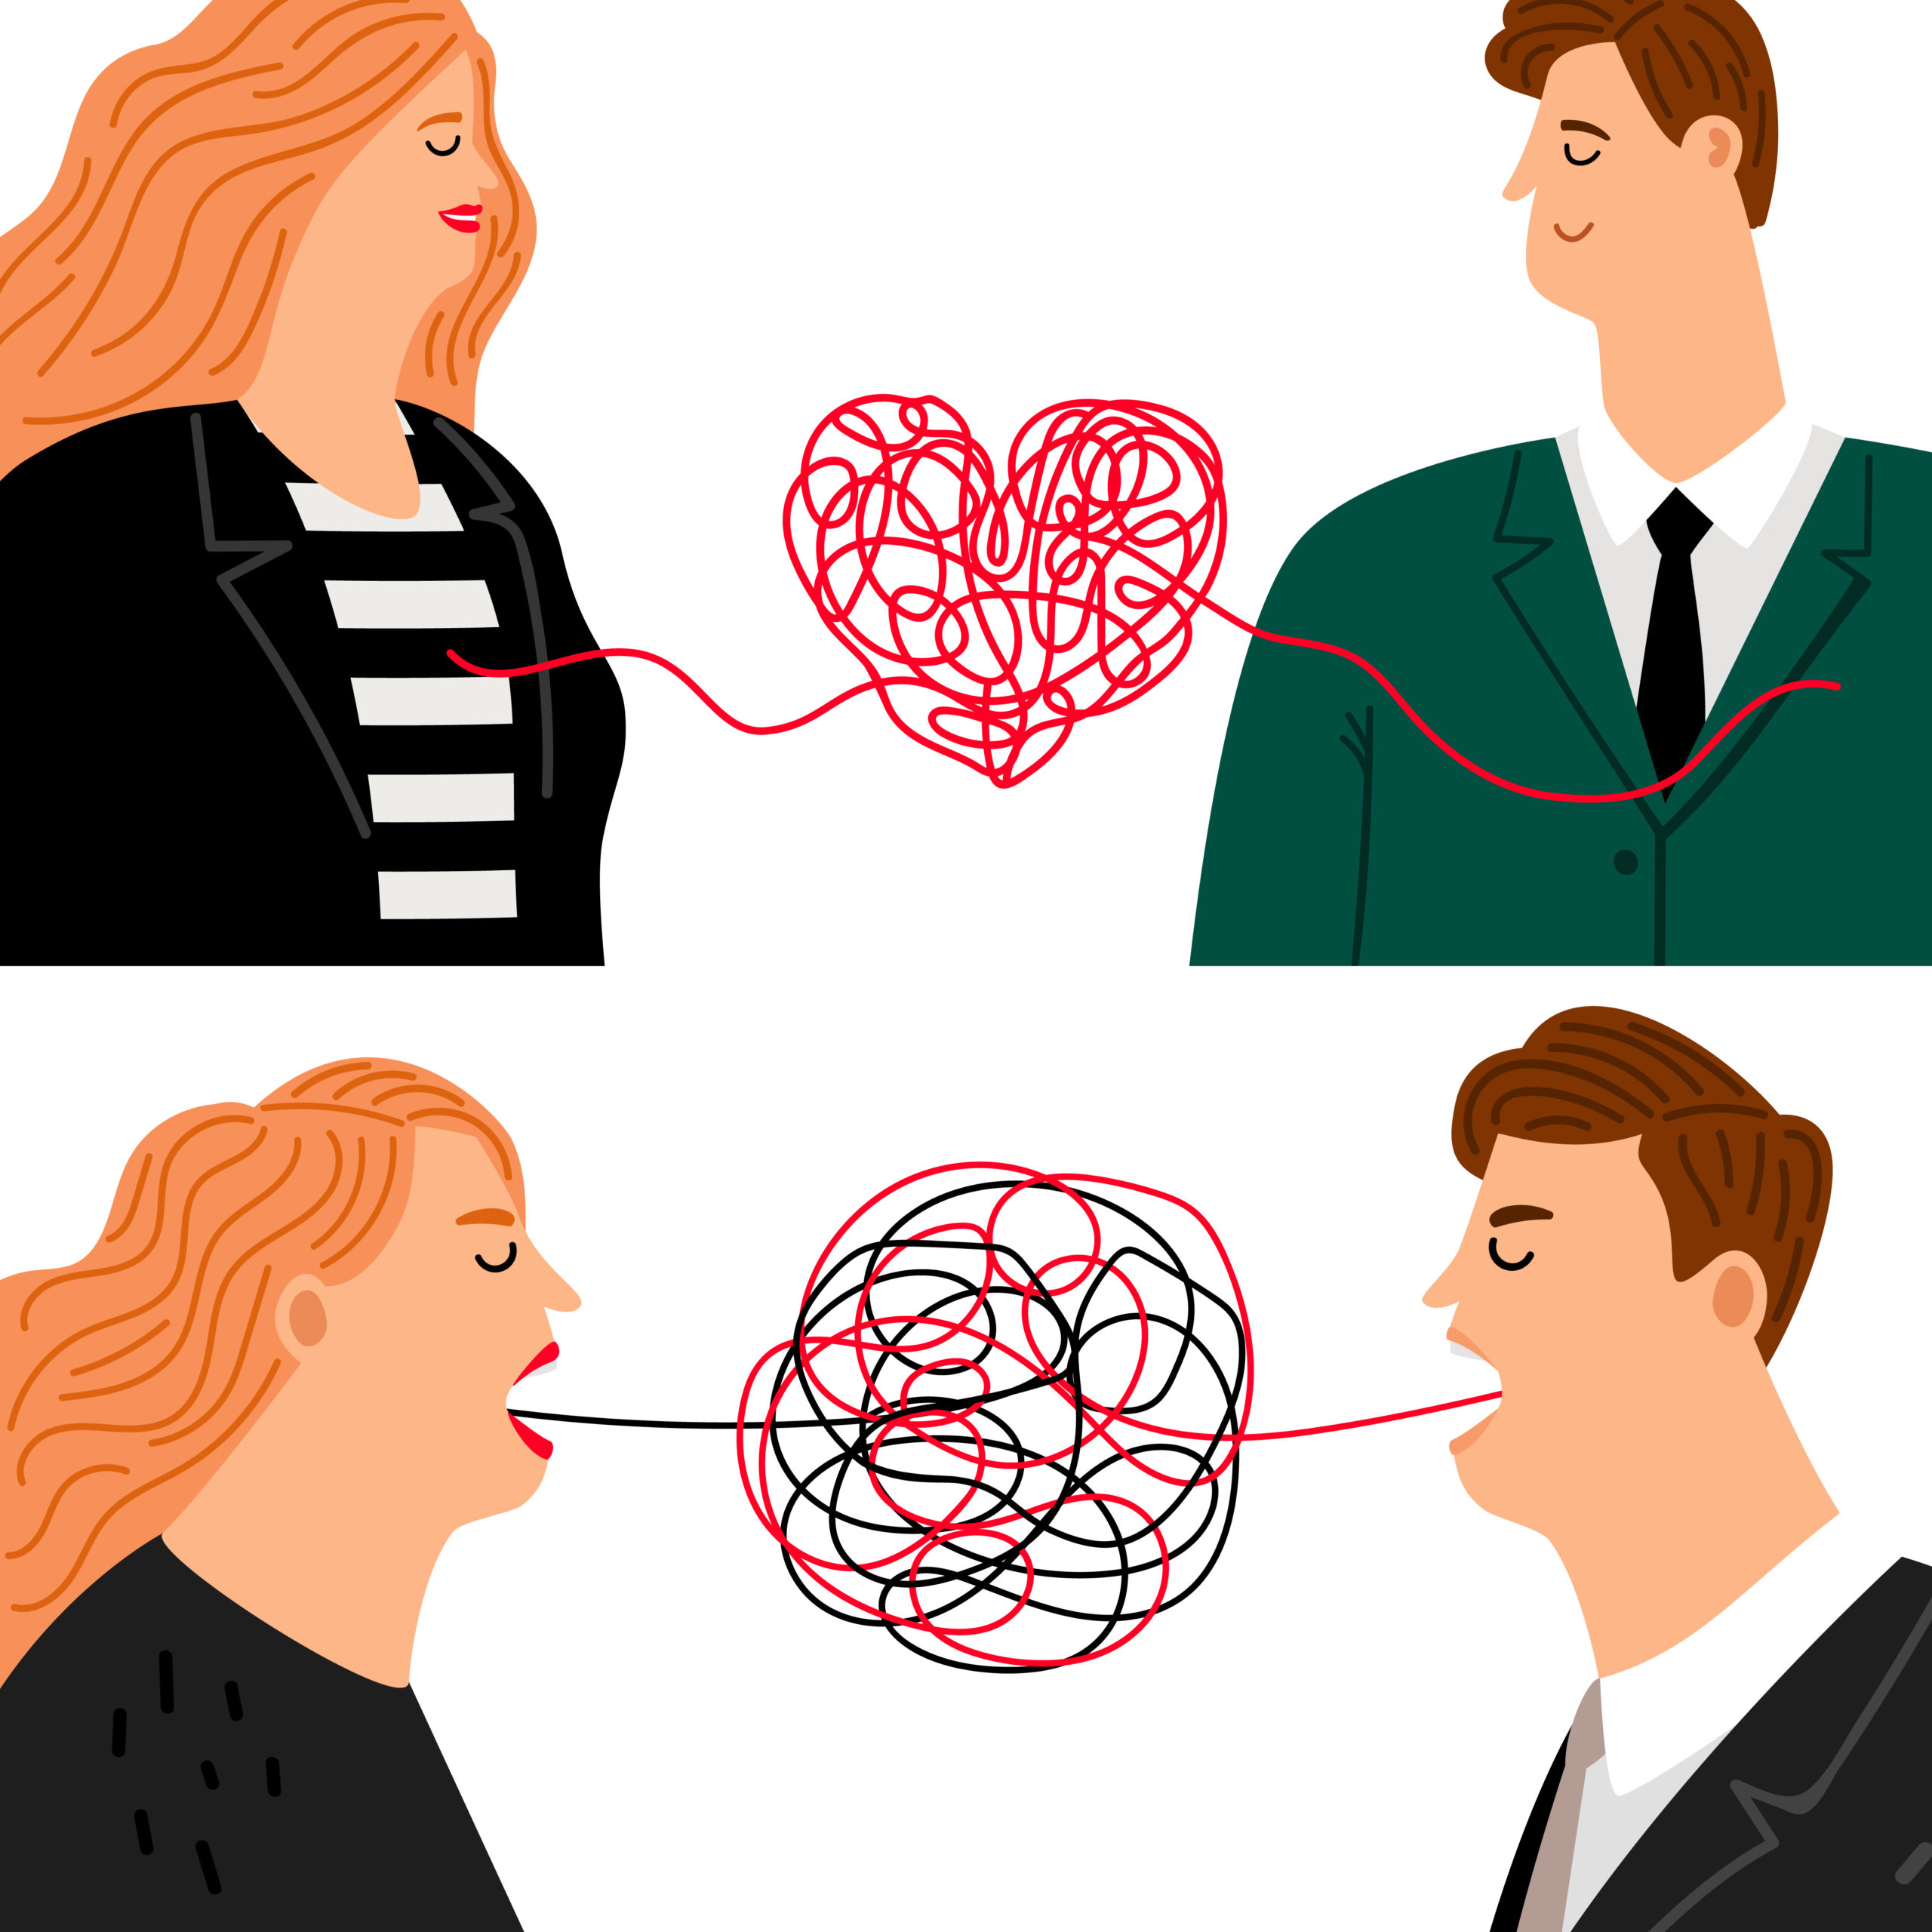 Love hate man and woman. Angry sad wife and husband characters and marriage couple in love, emotions and relationships concepts, vector illustration